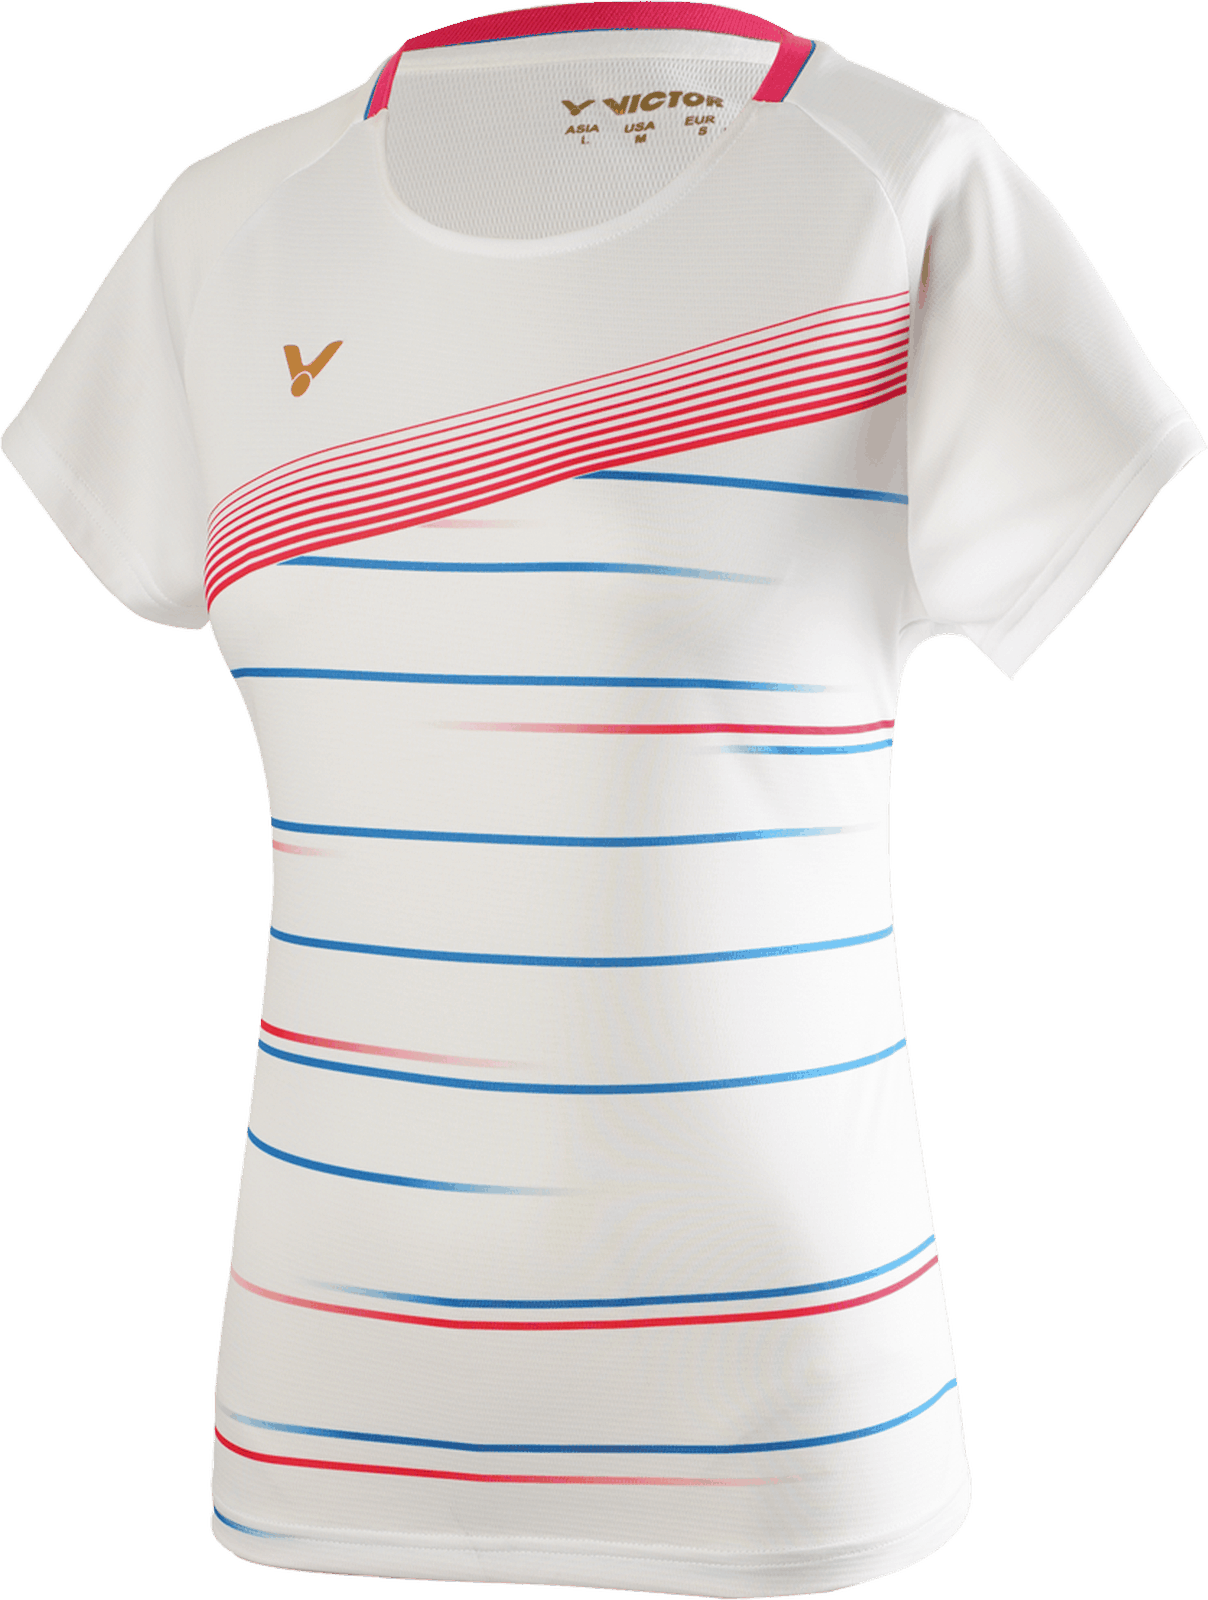 VICTOR T-Shirt T-01003 A